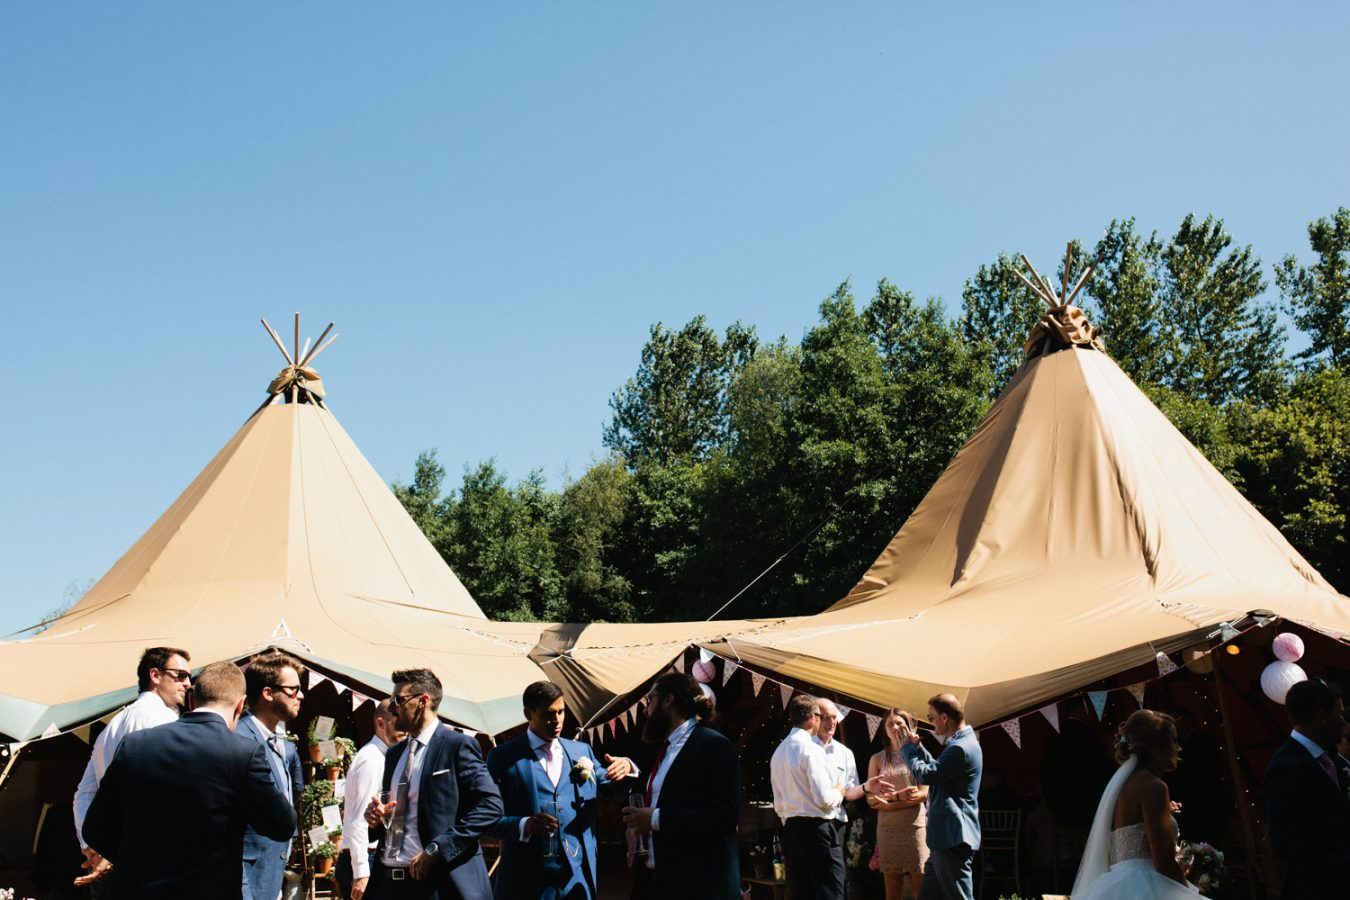 Summer Tipi Weddings in Kent at Frant Lakes by Kent Wedding Photographer Matilda Delves